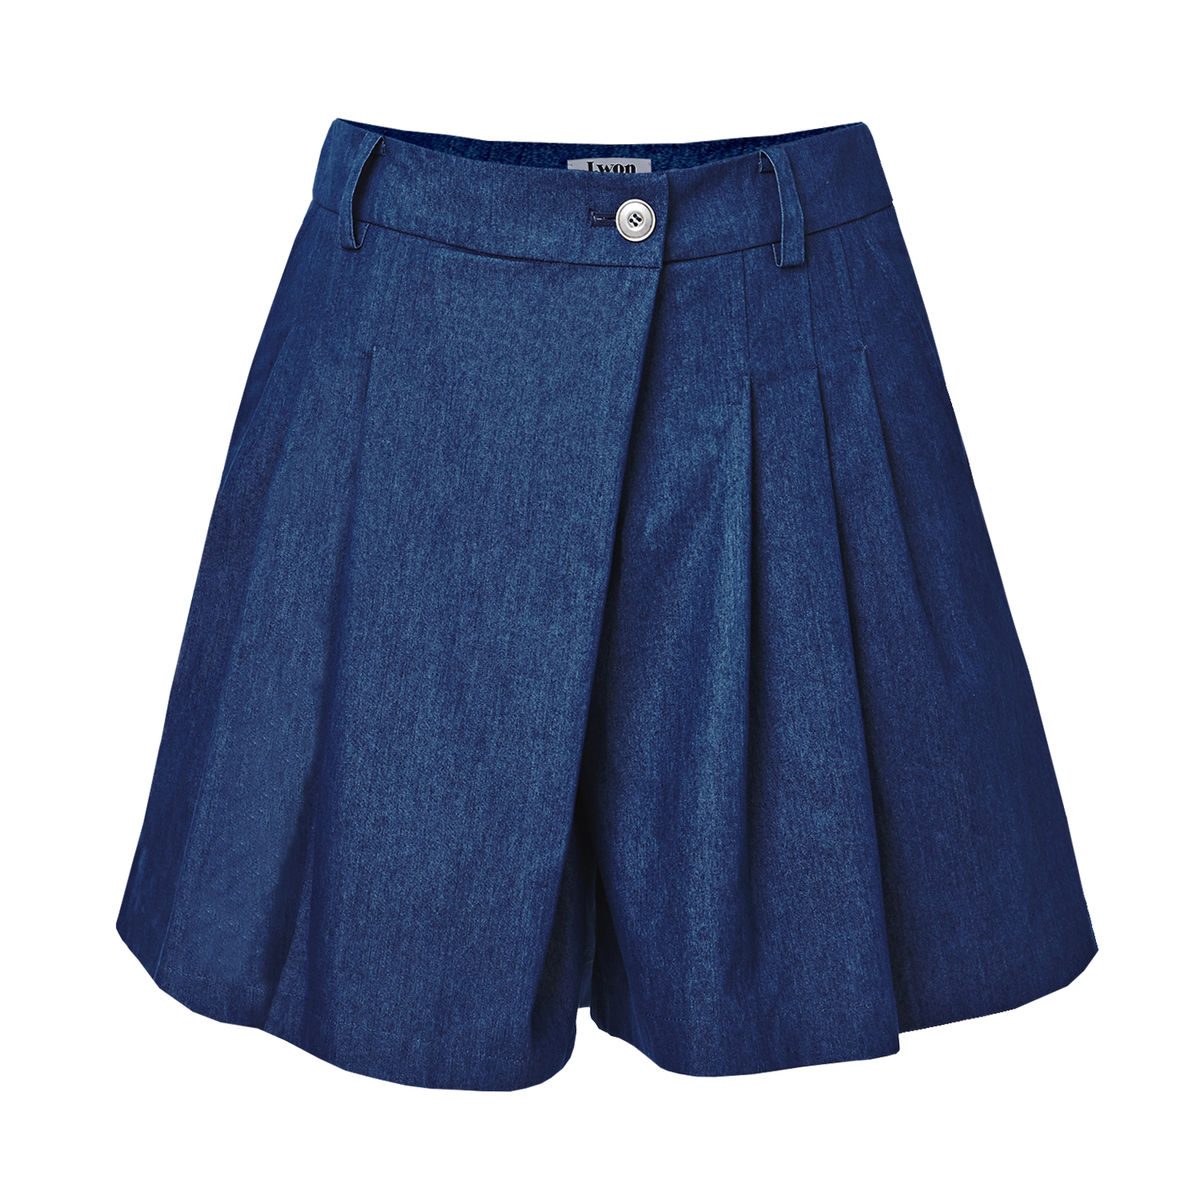 Skirt-like short pants - product images  of